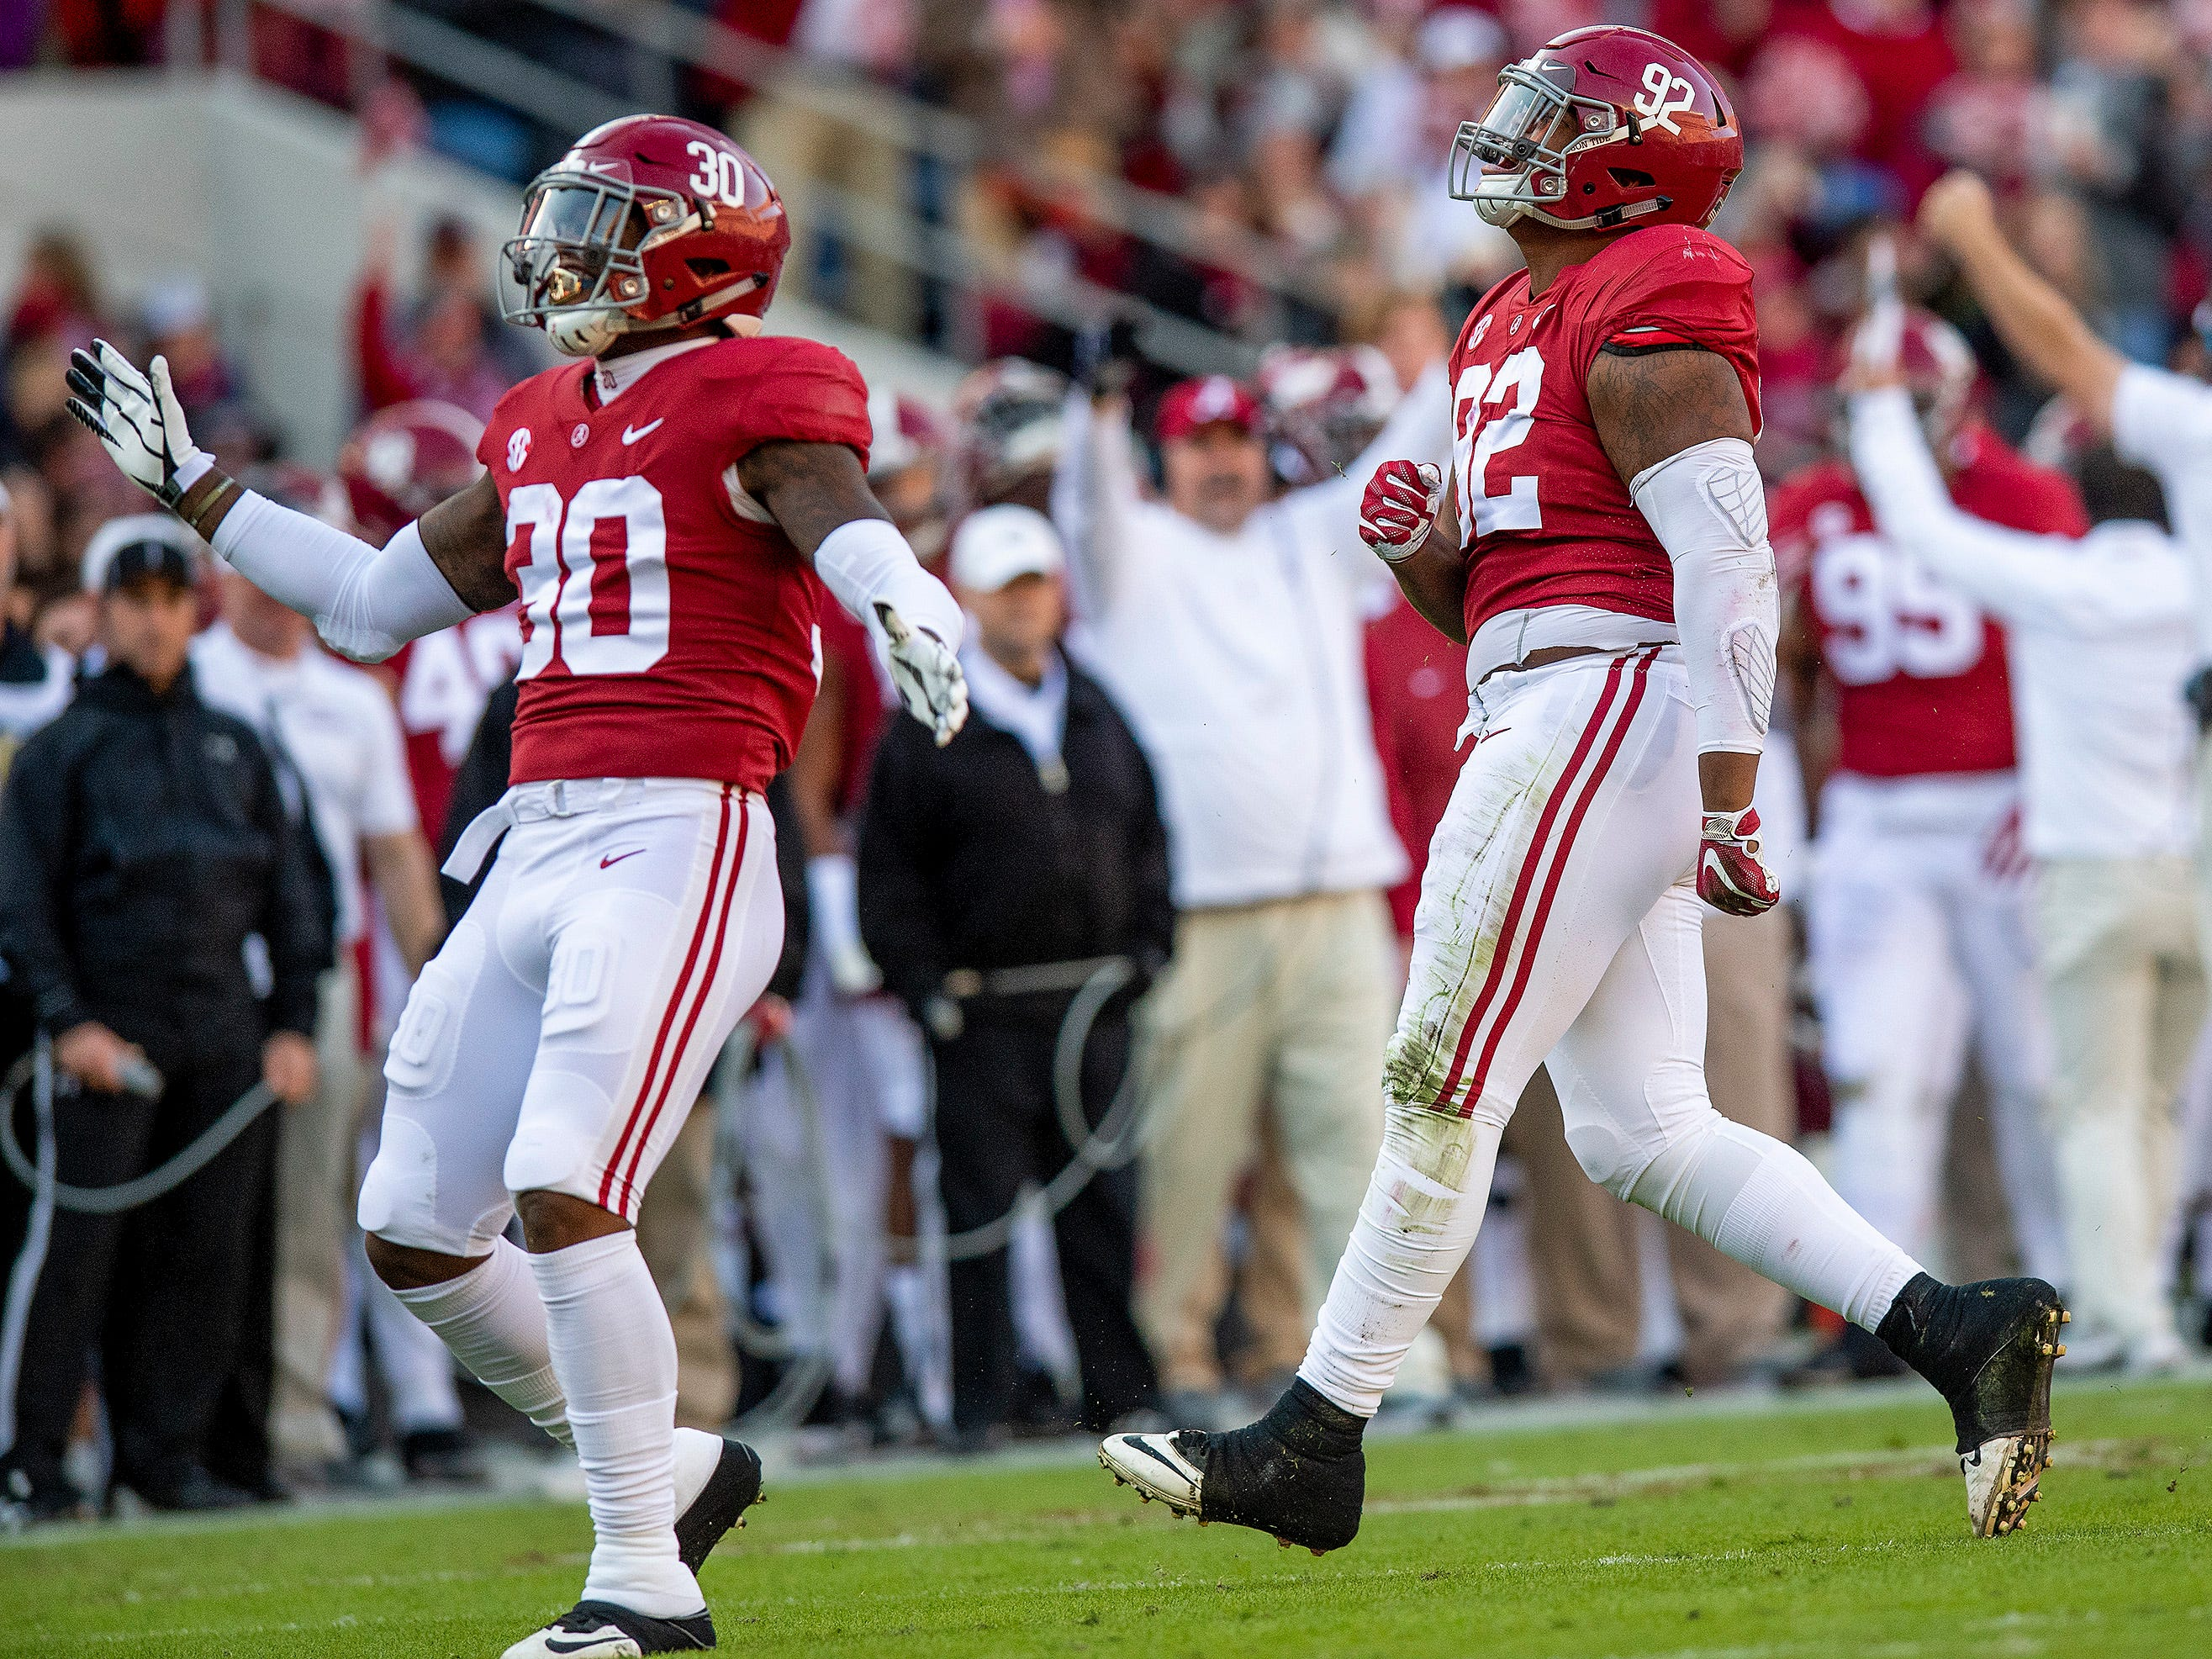 Alabama linebacker Mack Wilson (30) and Alabama defensive lineman Quinnen Williams (92) celebrate a sack against Mississippi State in first half action at Bryant Denny Stadium in Tuscaloosa, Ala., on Saturday November 9, 2018.